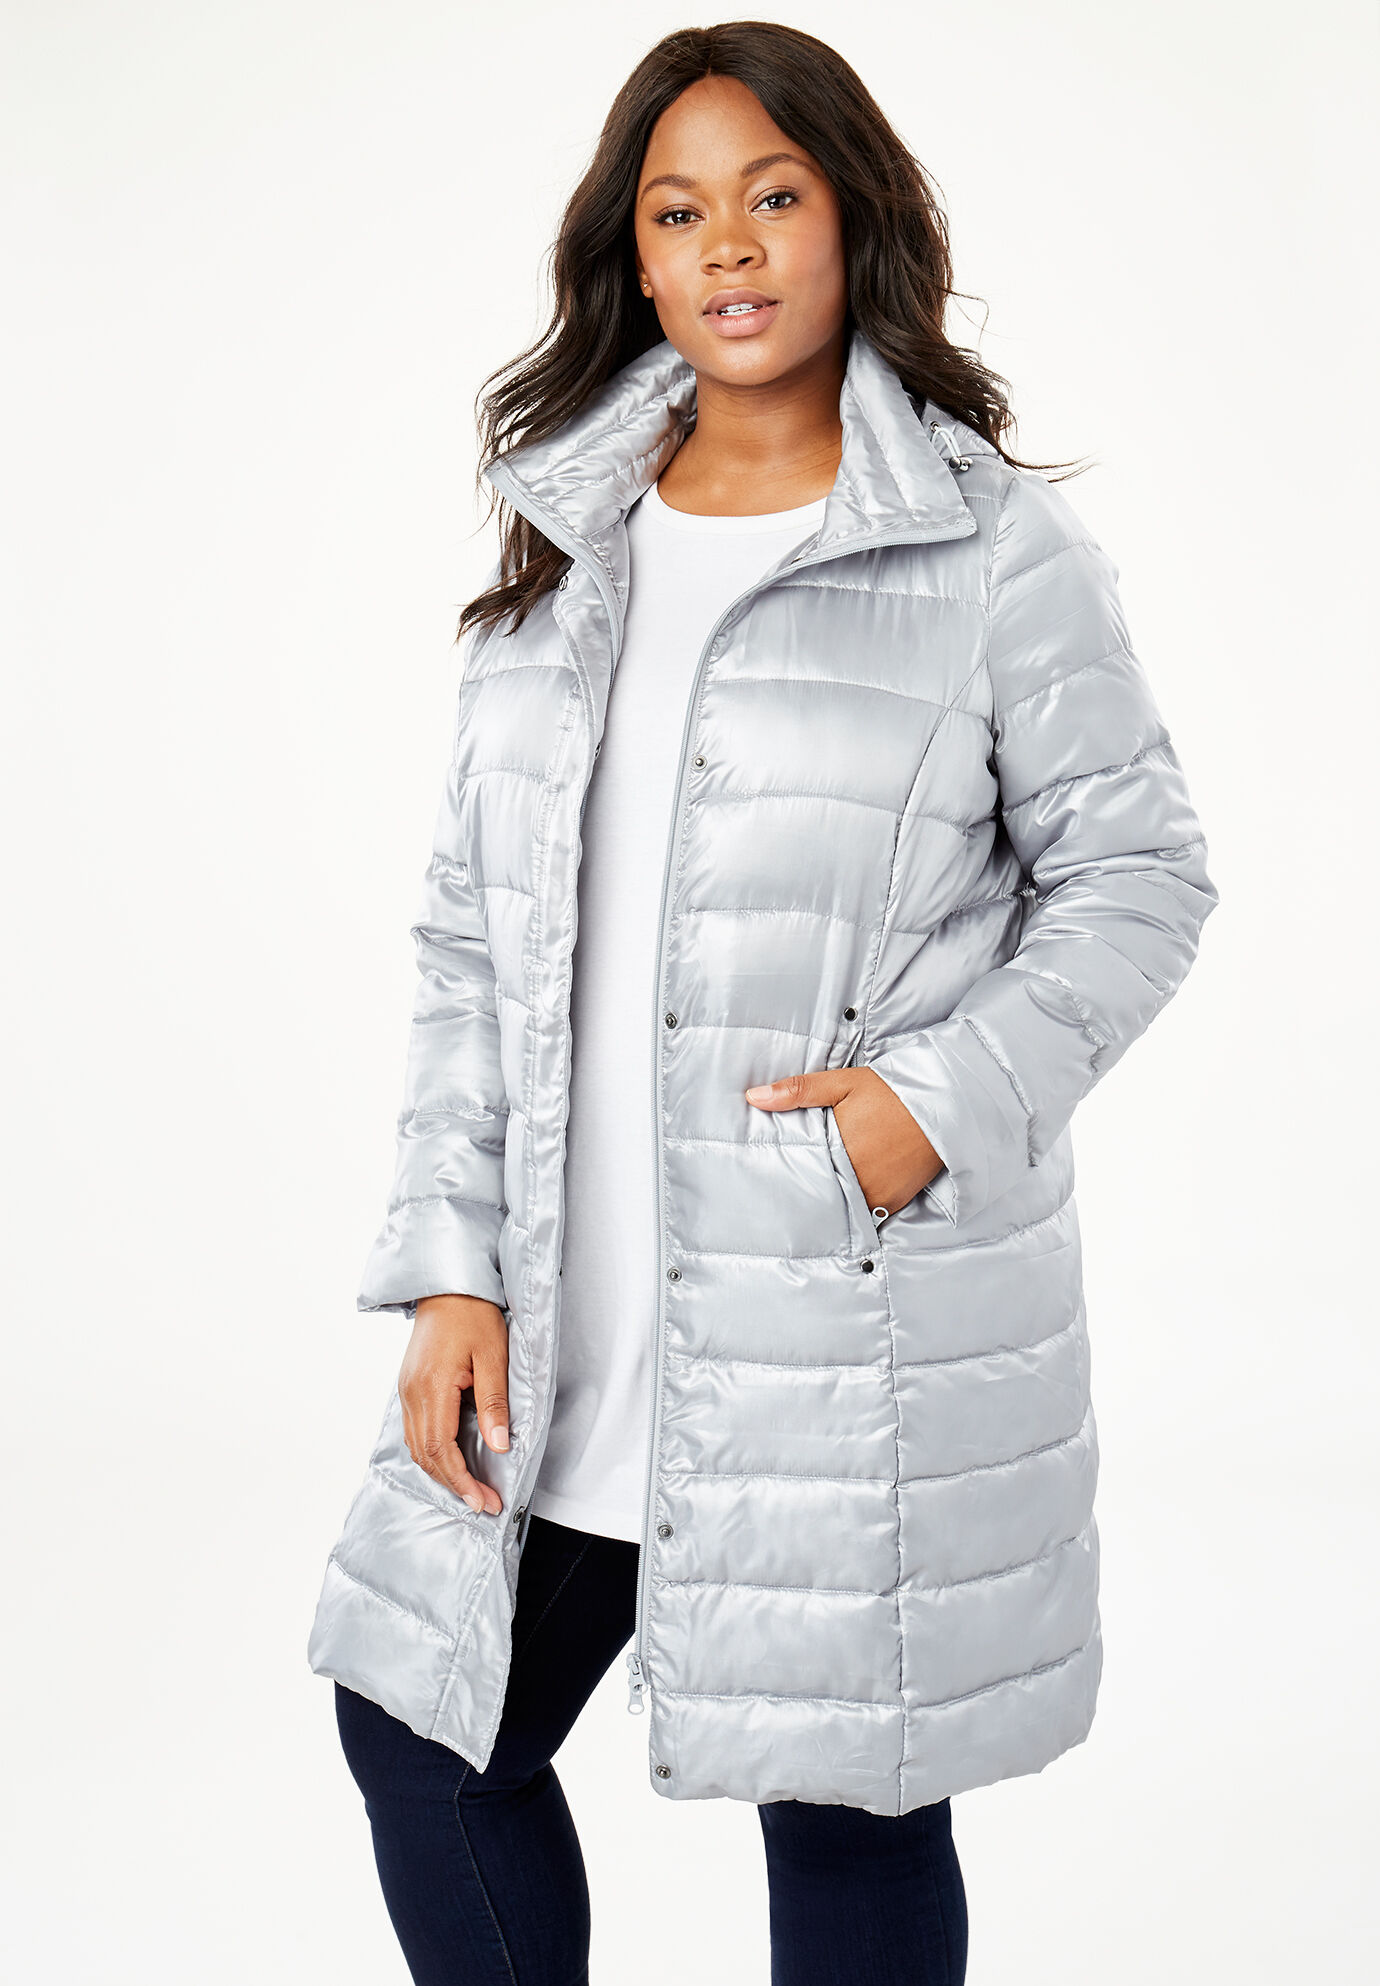 a1e4187fee4 Women Woman Within Plus Size Packable Long Puffer Jacket